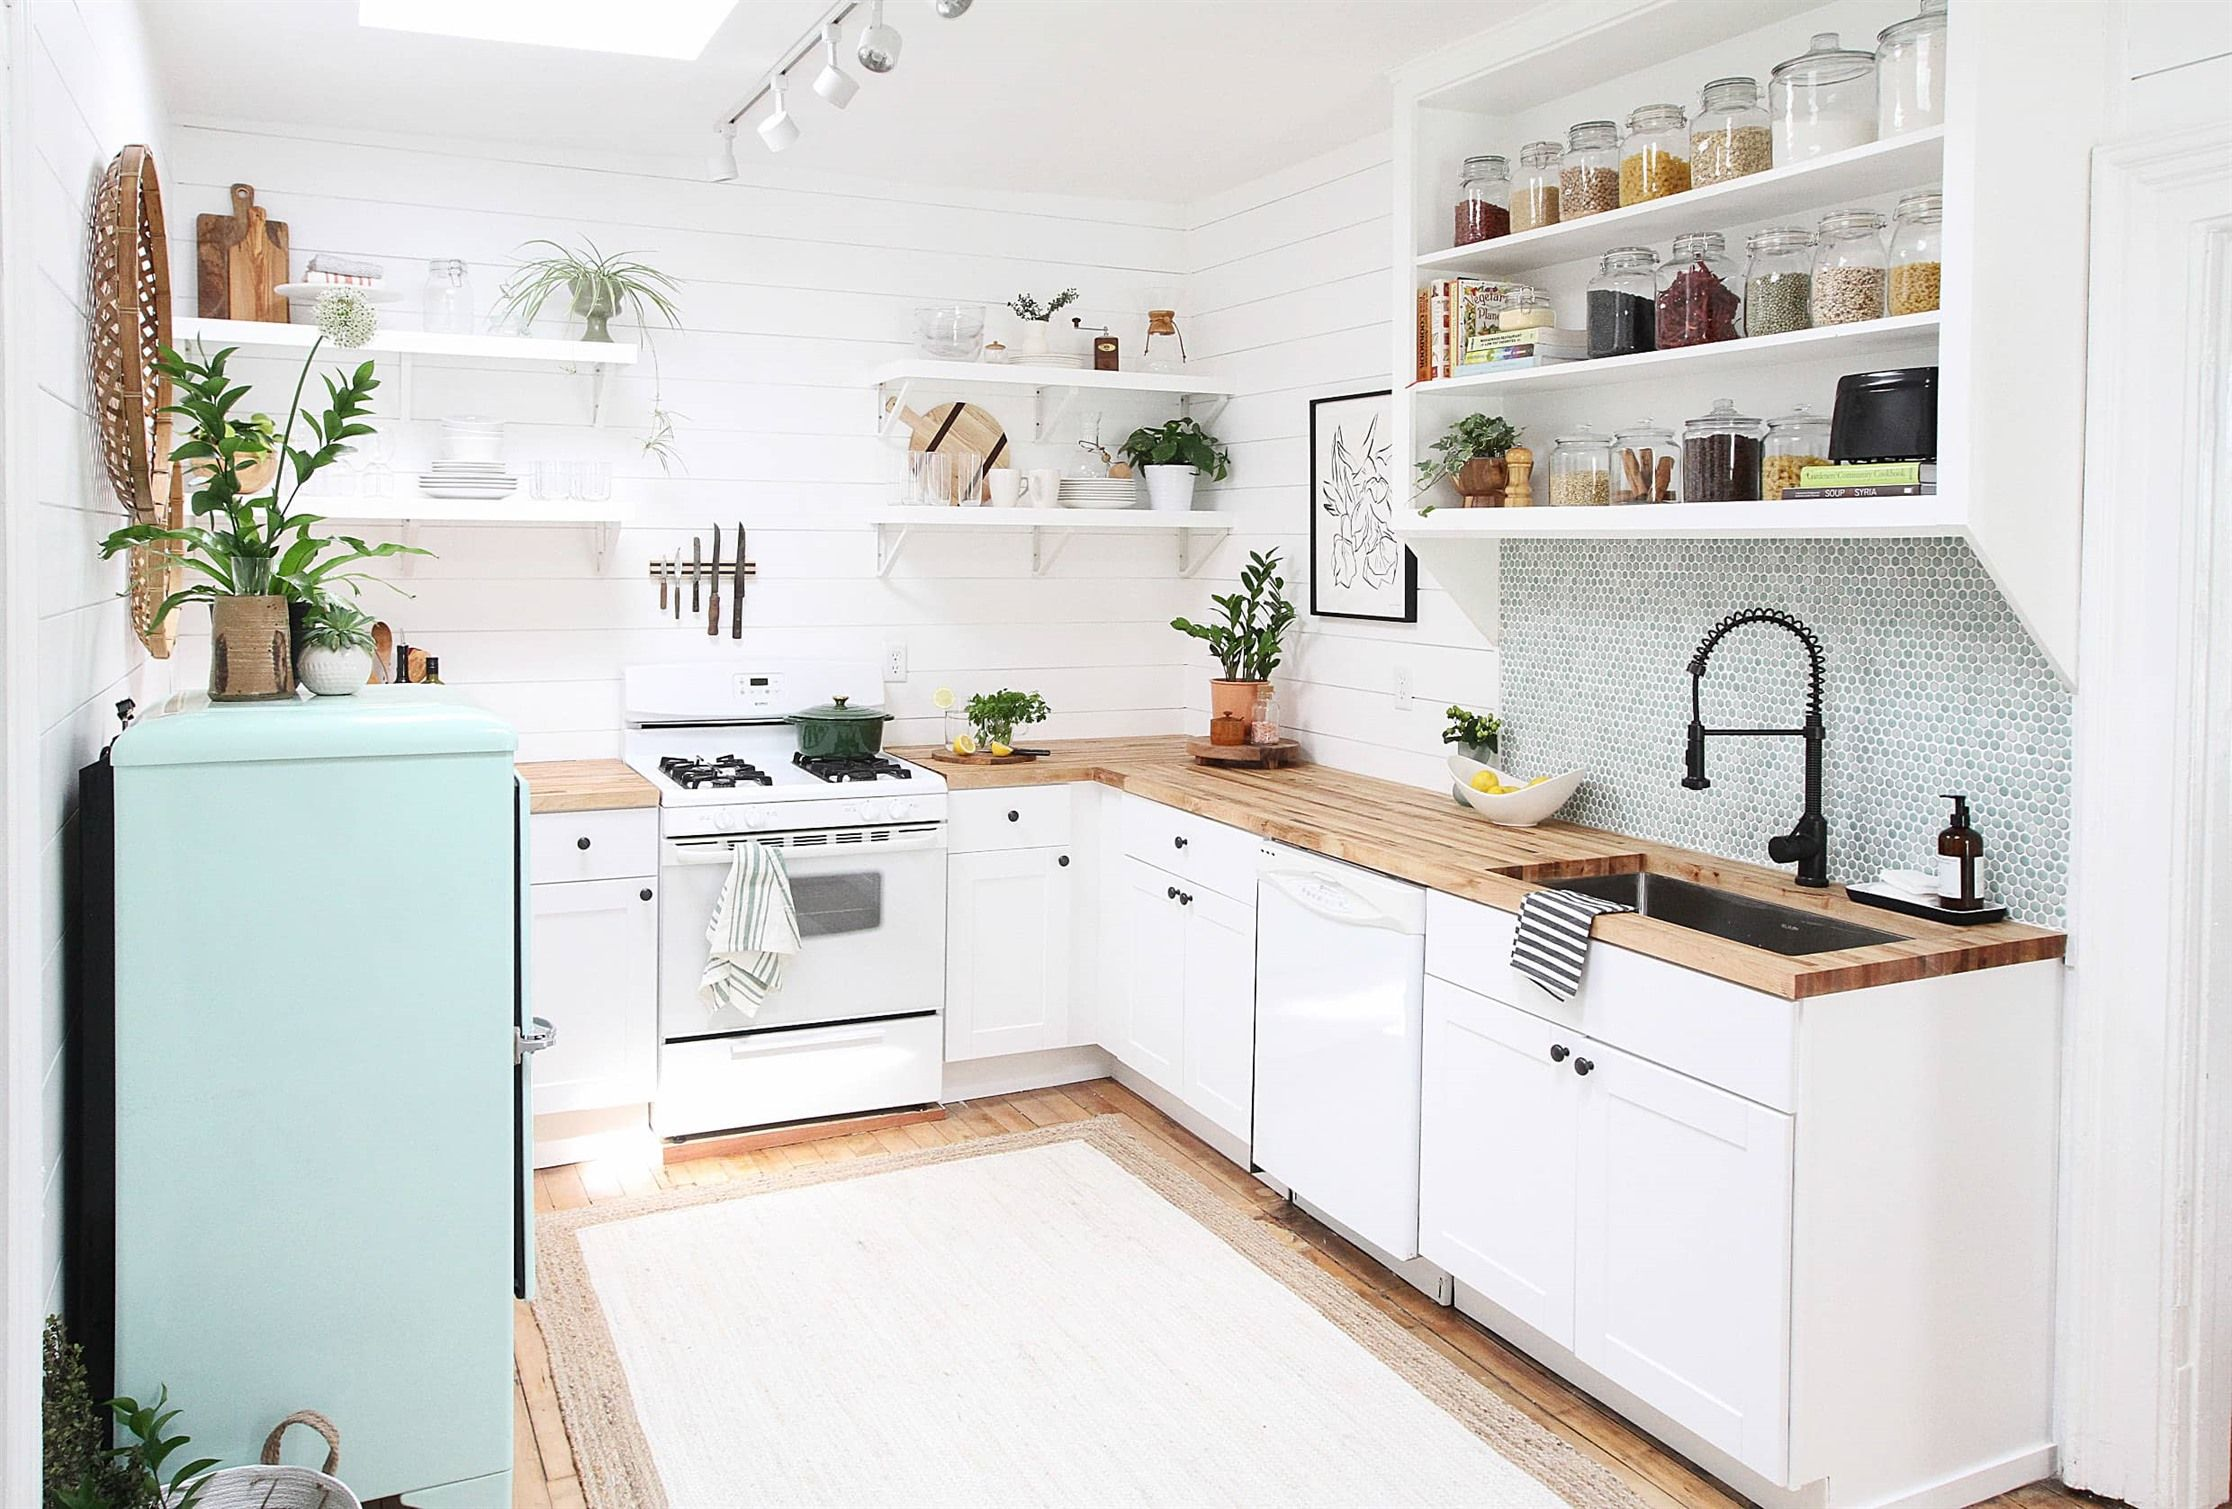 26 Unearthly Apartment Kitchen Remodel Ideas : Hair Raising ...